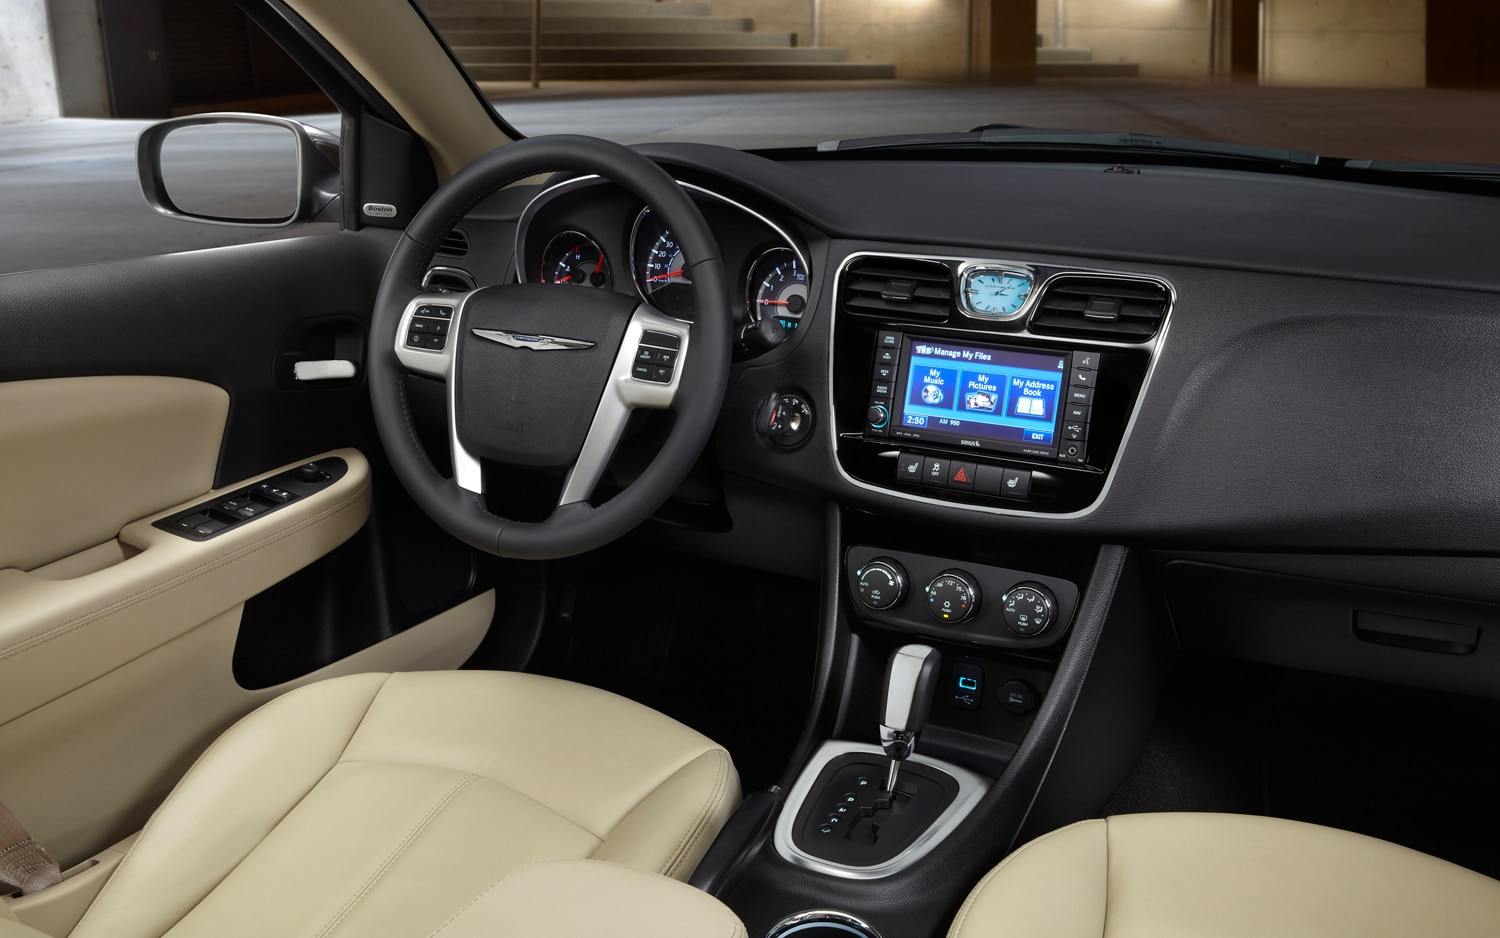 2014 Chrysler 200S Interior New York City